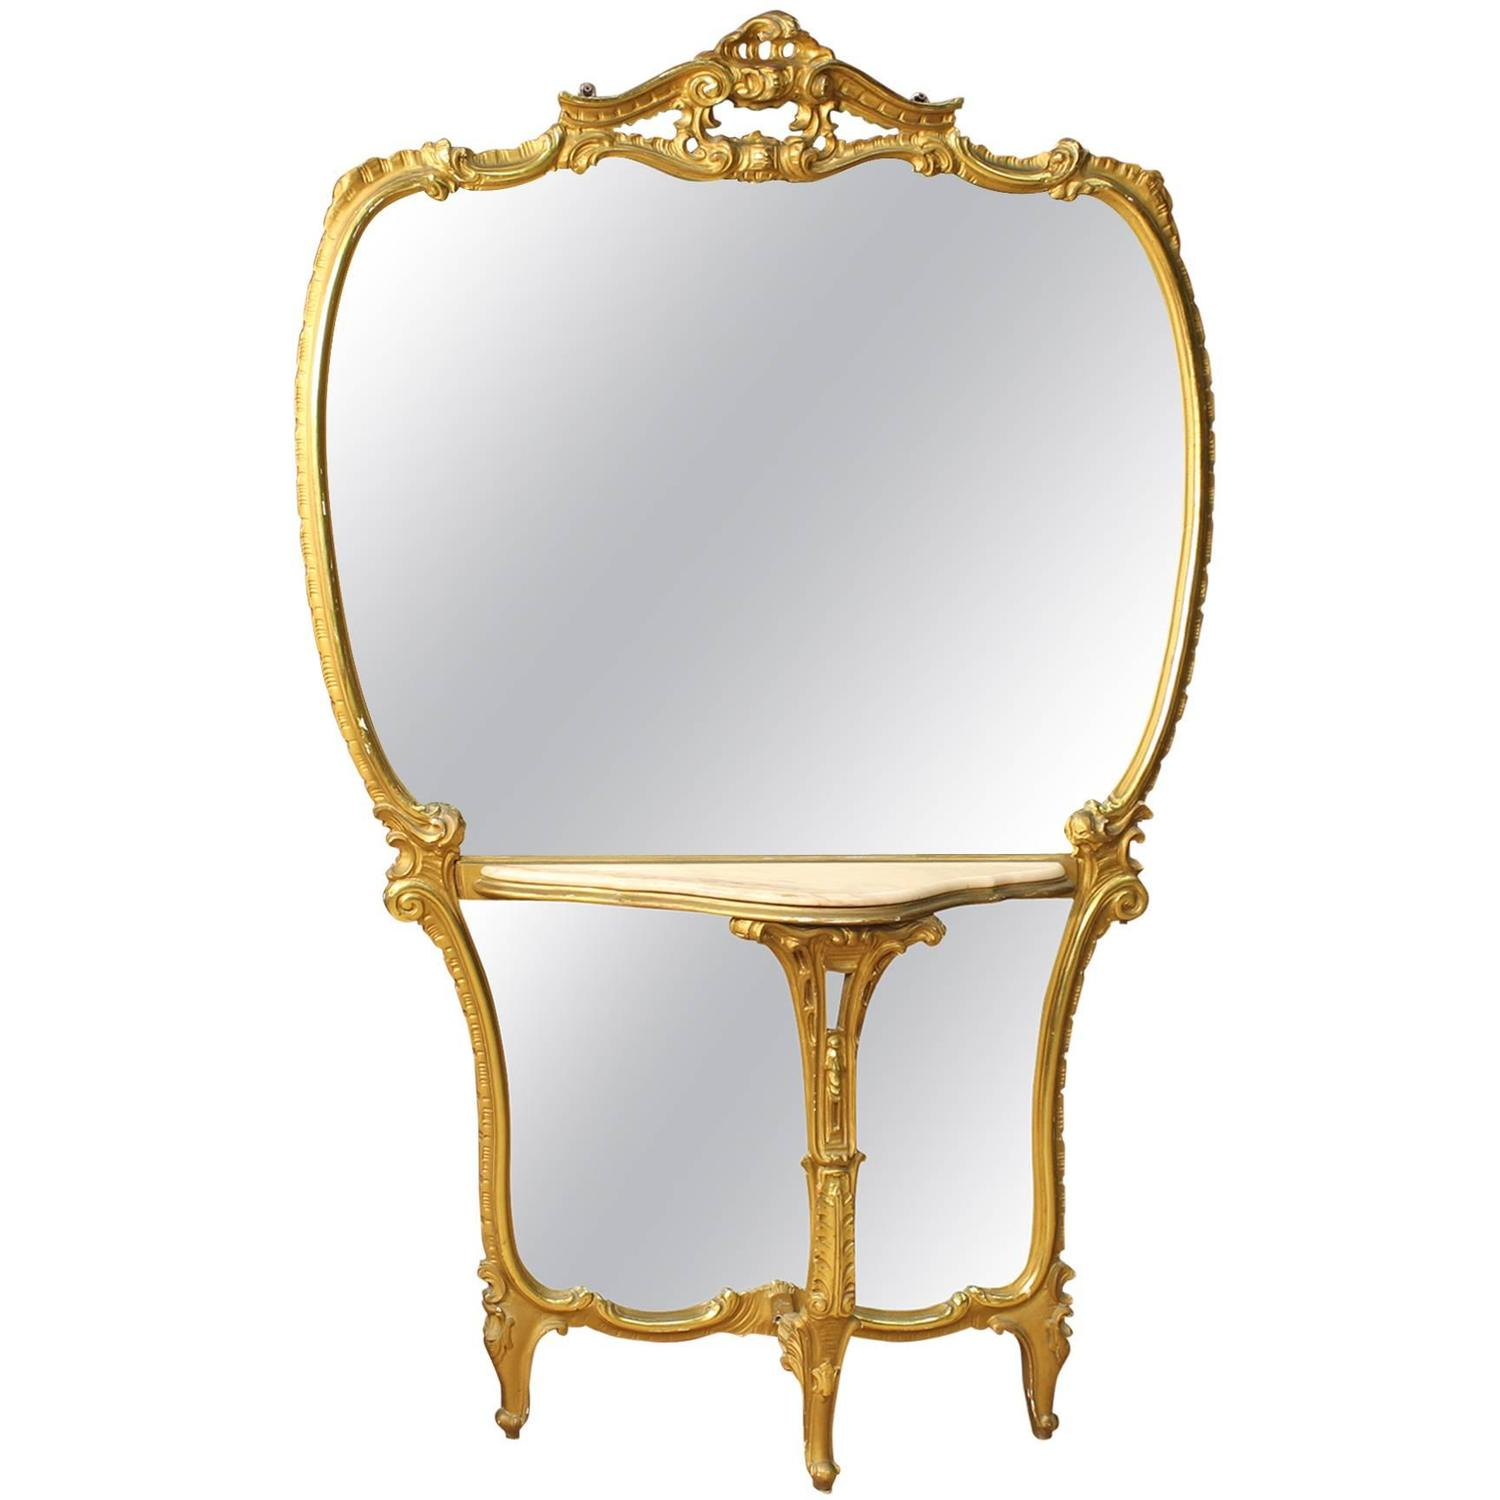 20th century italian gilded cheval mirror at 1stdibs for Cheval mirror